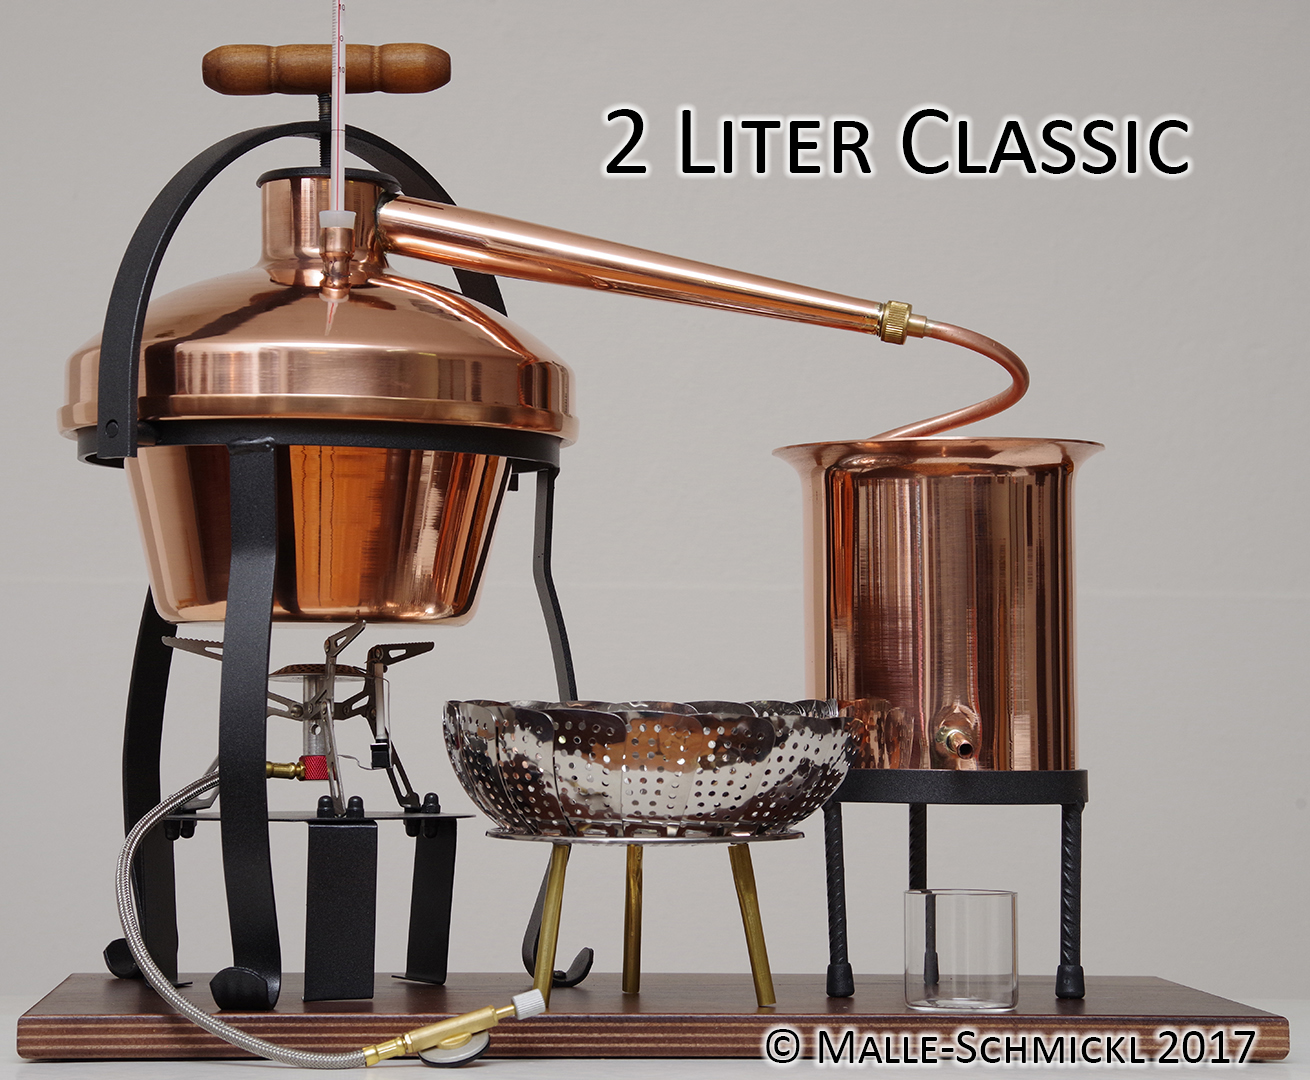 Still CLASSIC, 2 Liters, complete with steam thermometer, gas burner and  large aroma kettle